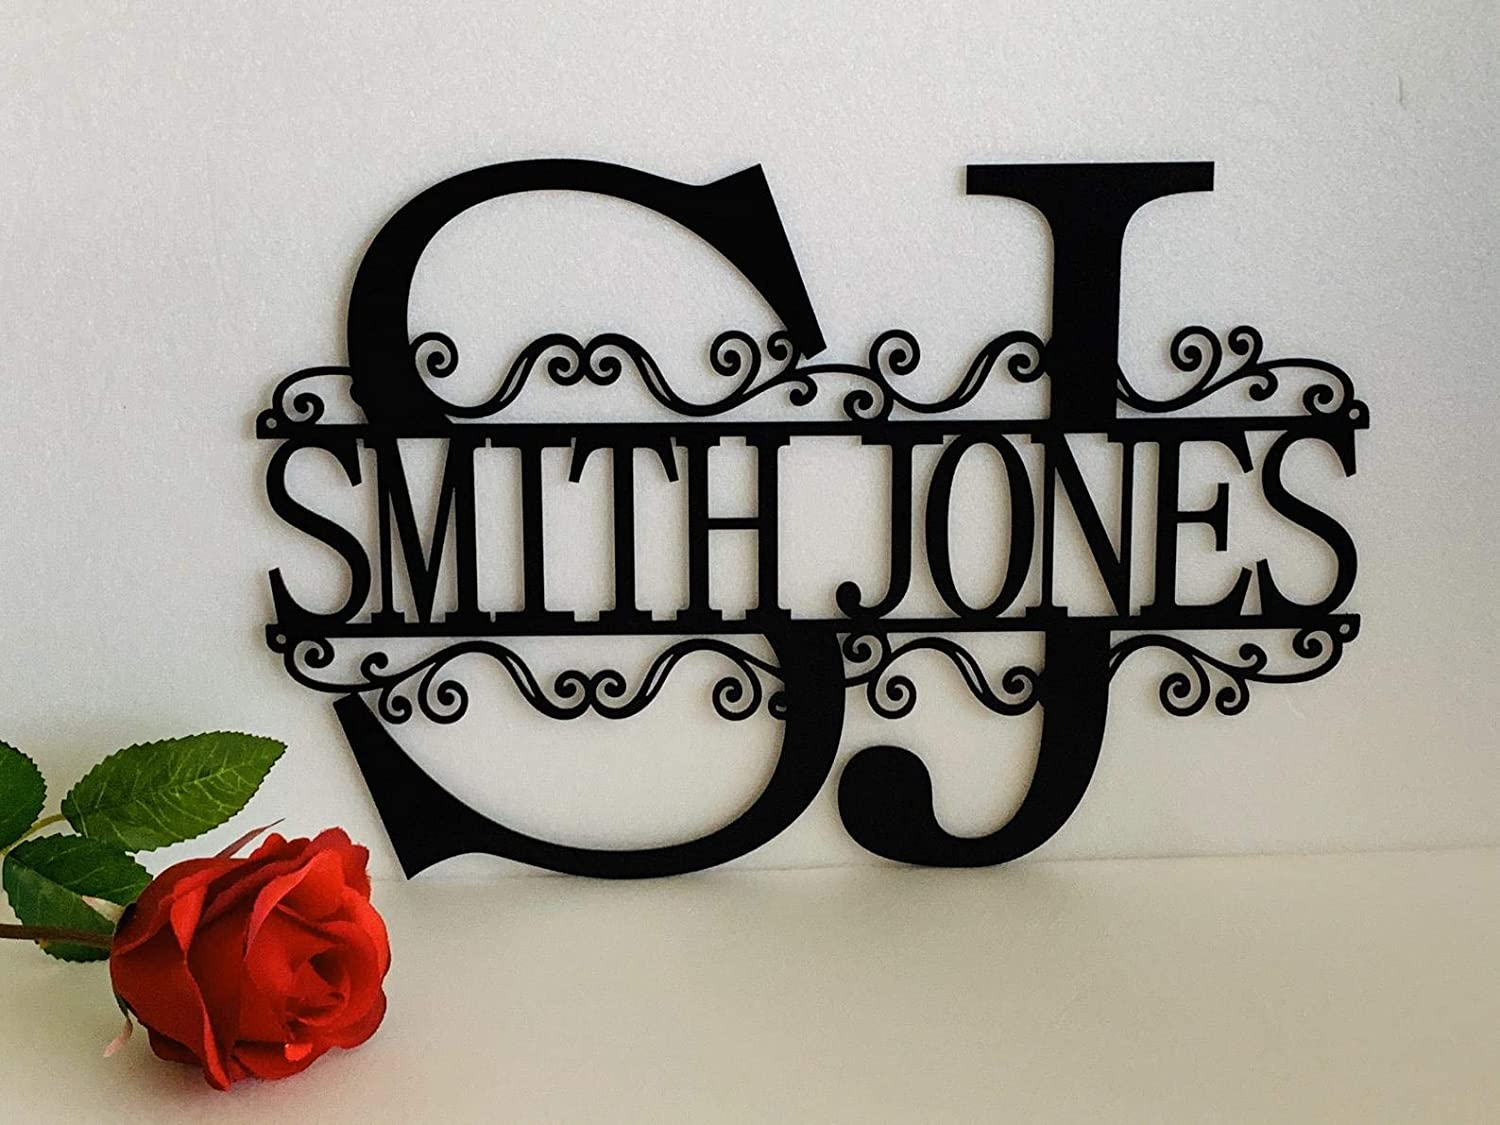 Two Letter Initials Split Wreath Wall Monogram 2 Custom Names Hanging Sign First and Last Names Personalized Metal Acrylic Wood Housewarming Anniversary Wedding Fathers Day Gift Door Hanger Home Decor